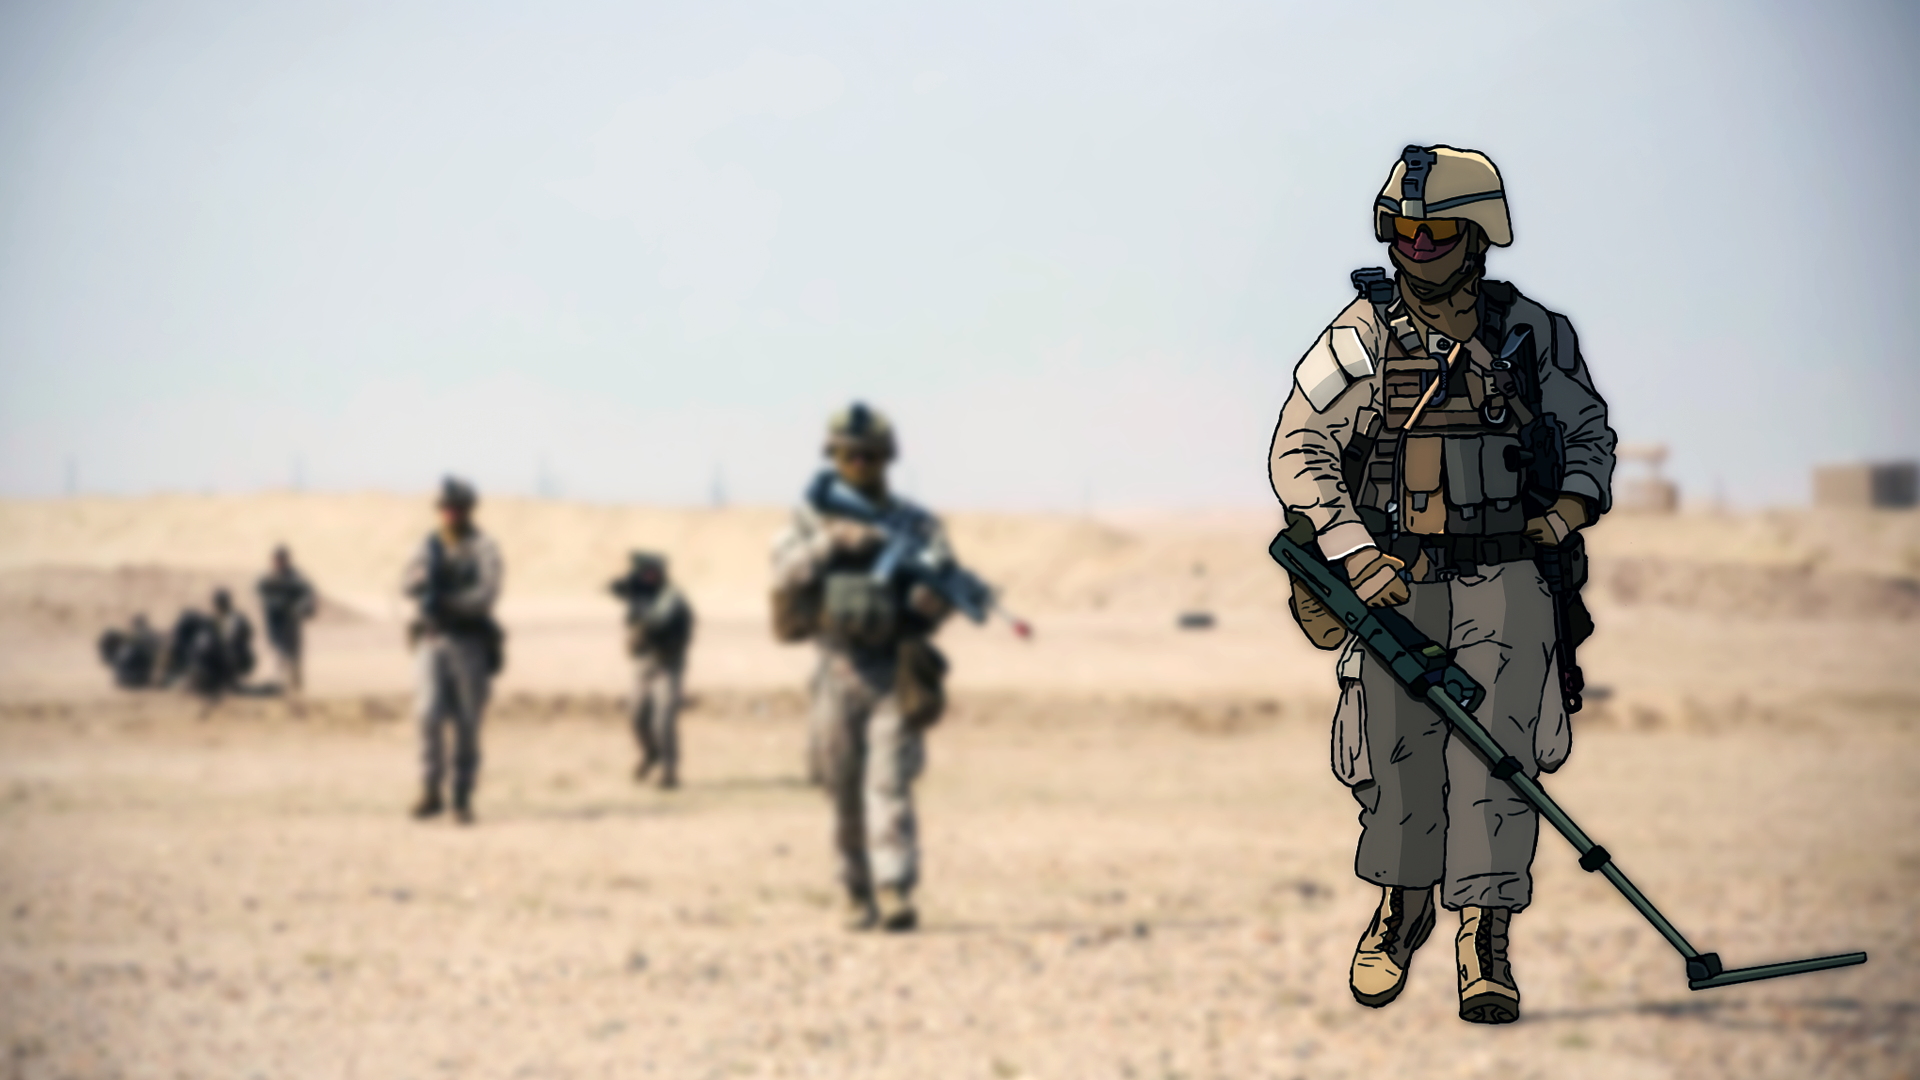 Marine With Metal Detector Wallpaper 1920x1080 By MuFFinFr3ak